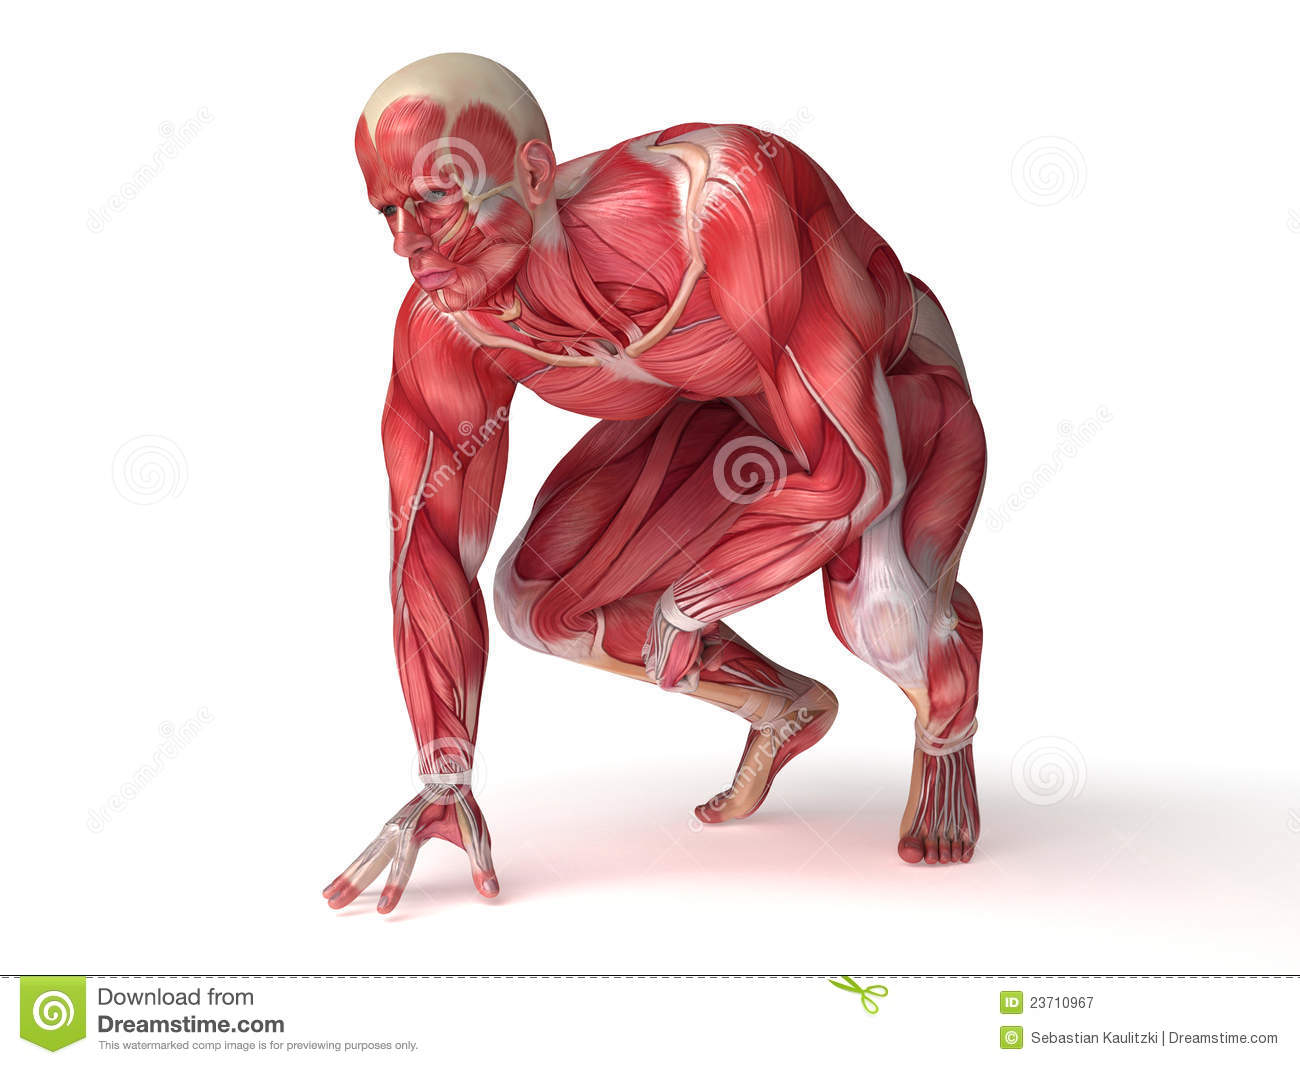 Muscle Anatomy Images Muscle Anatomy Stock Photos Images - mandegar.info